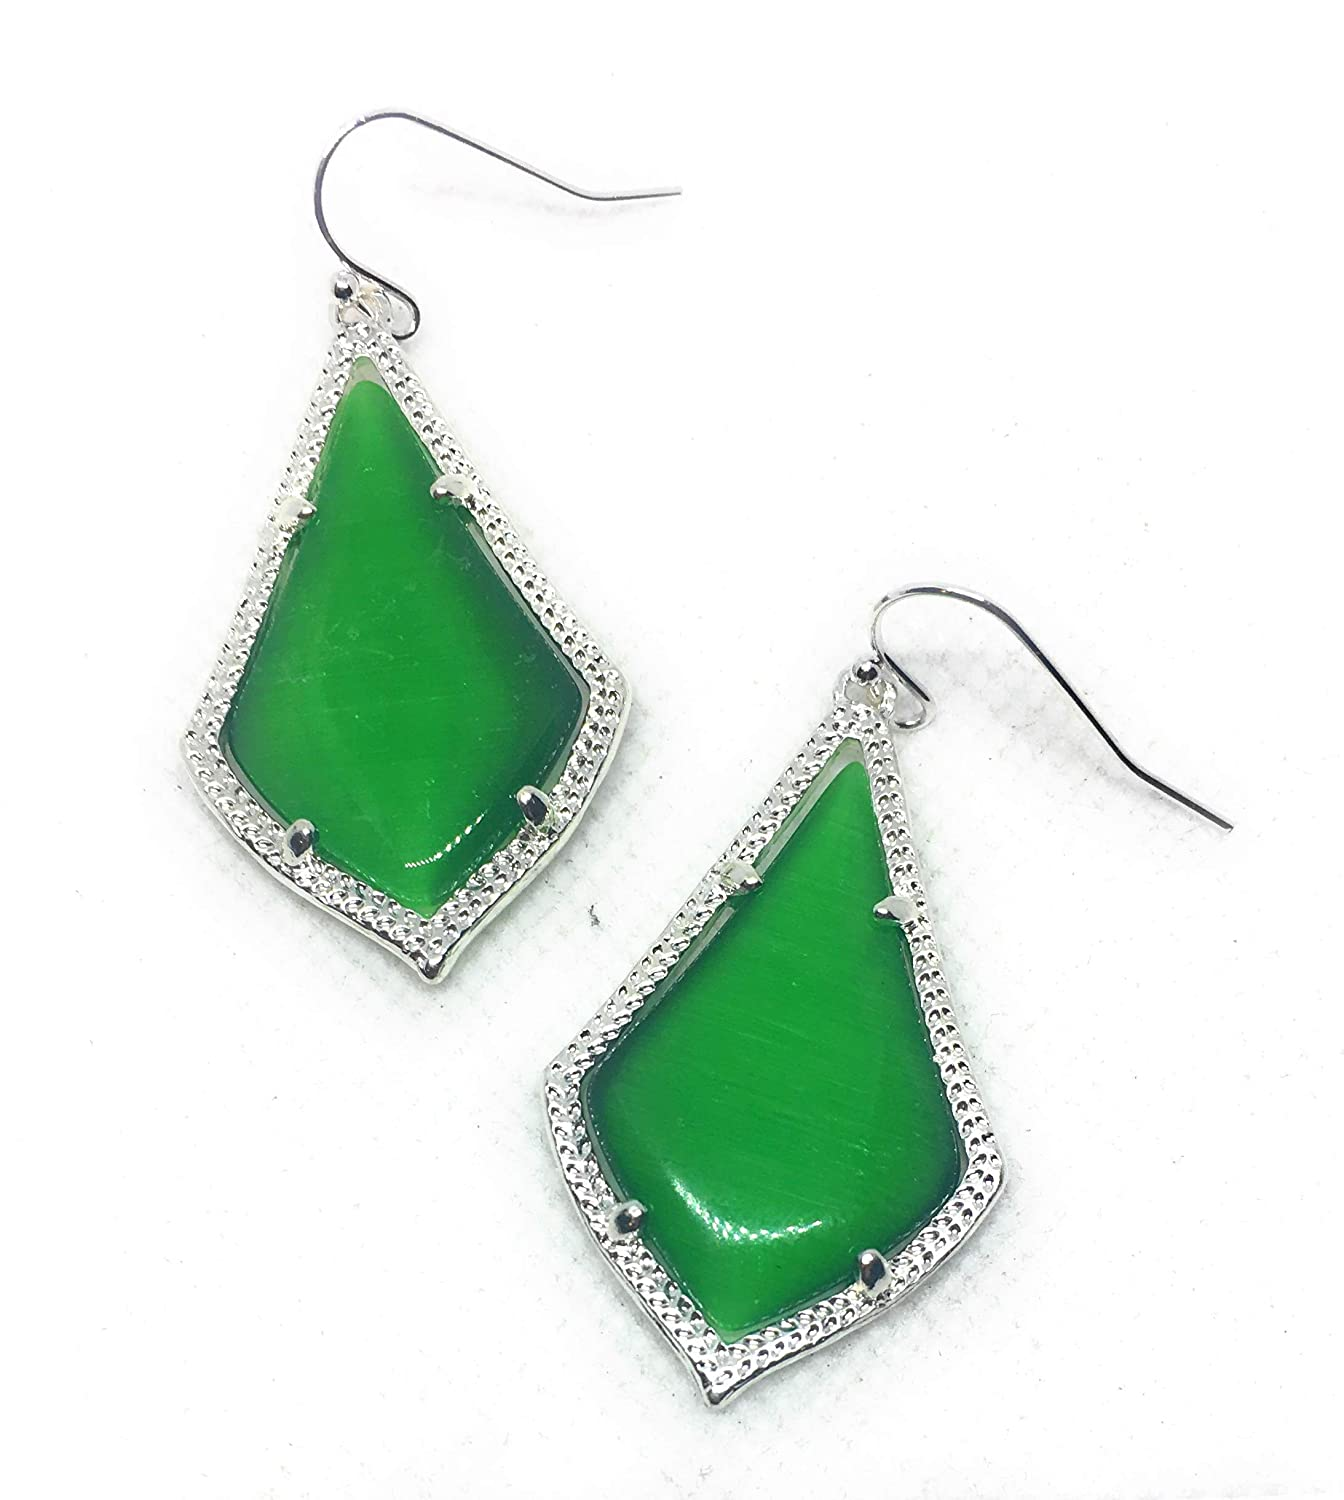 Inspired Fashion Jewelry New Cat Eye Earrings in Emerald Green in Silver Tone